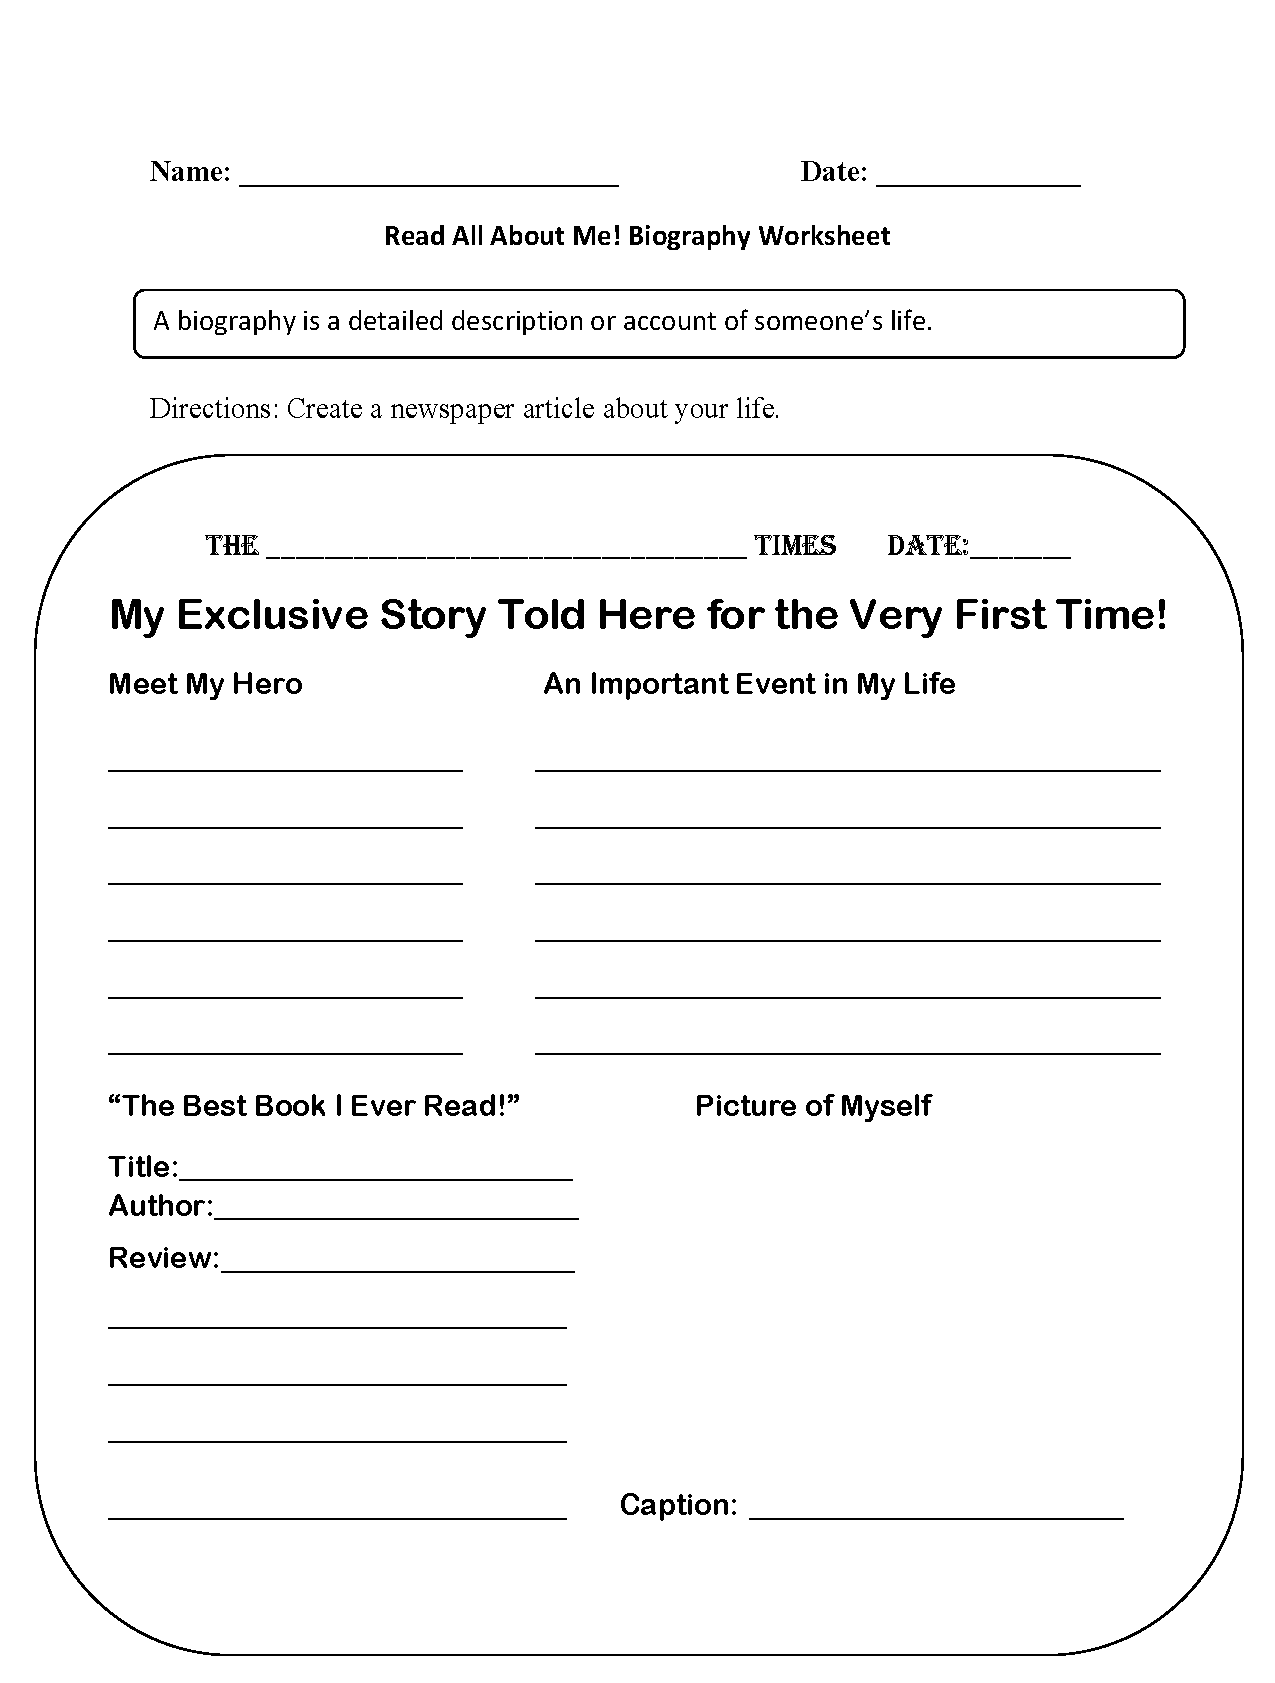 medium resolution of Read All About Me Back to School Worksheets   School worksheets